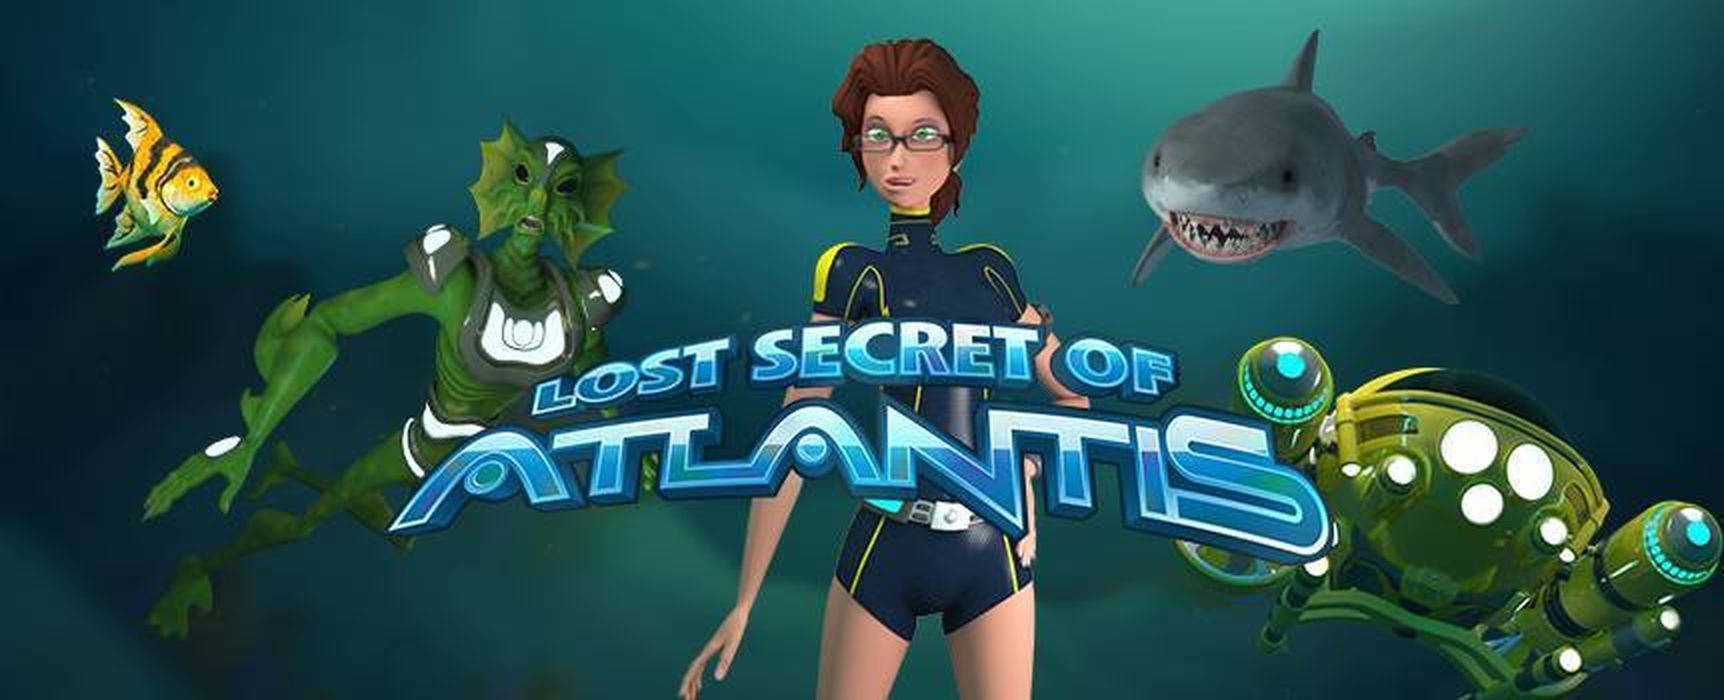 The Lost Secret of Atlantis Online Slot Demo Game by Rival